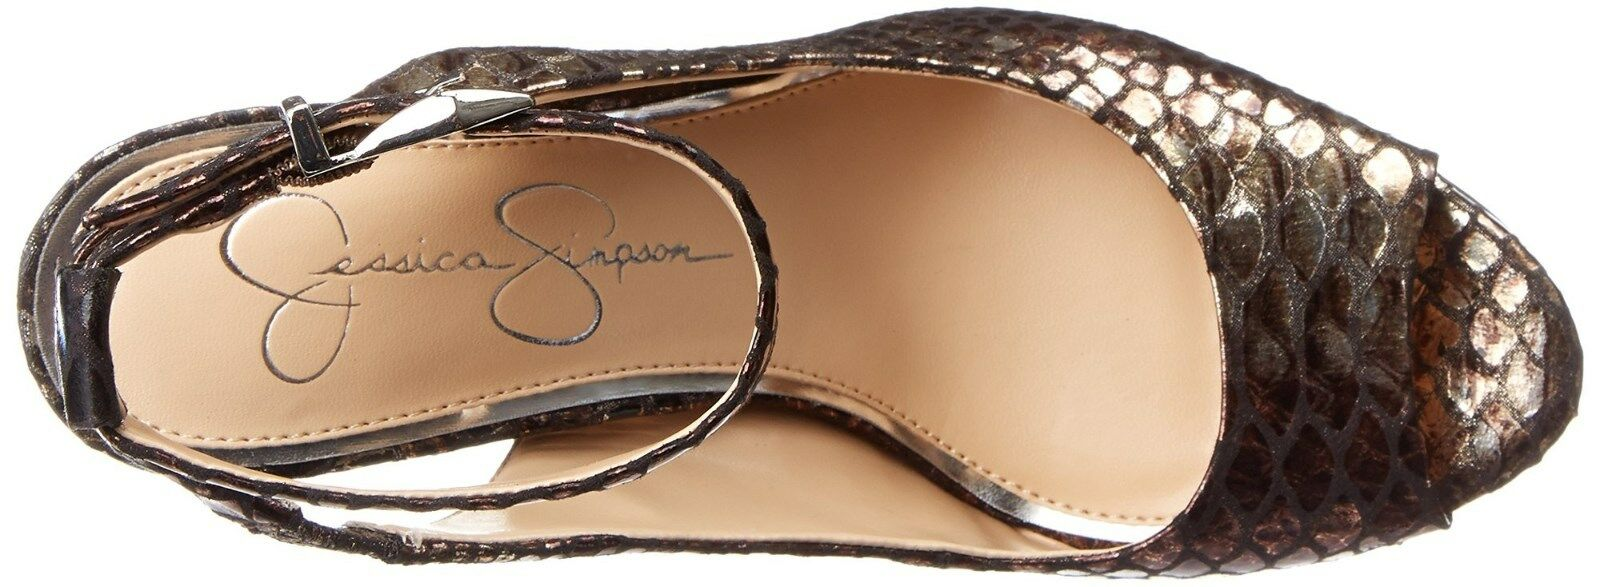 JESSICA SIMPSON CAREEN MULTI METALLIC METALLIC METALLIC SNAKE PRINT PLATFORM damen MULTIGröße AS 2bdadd